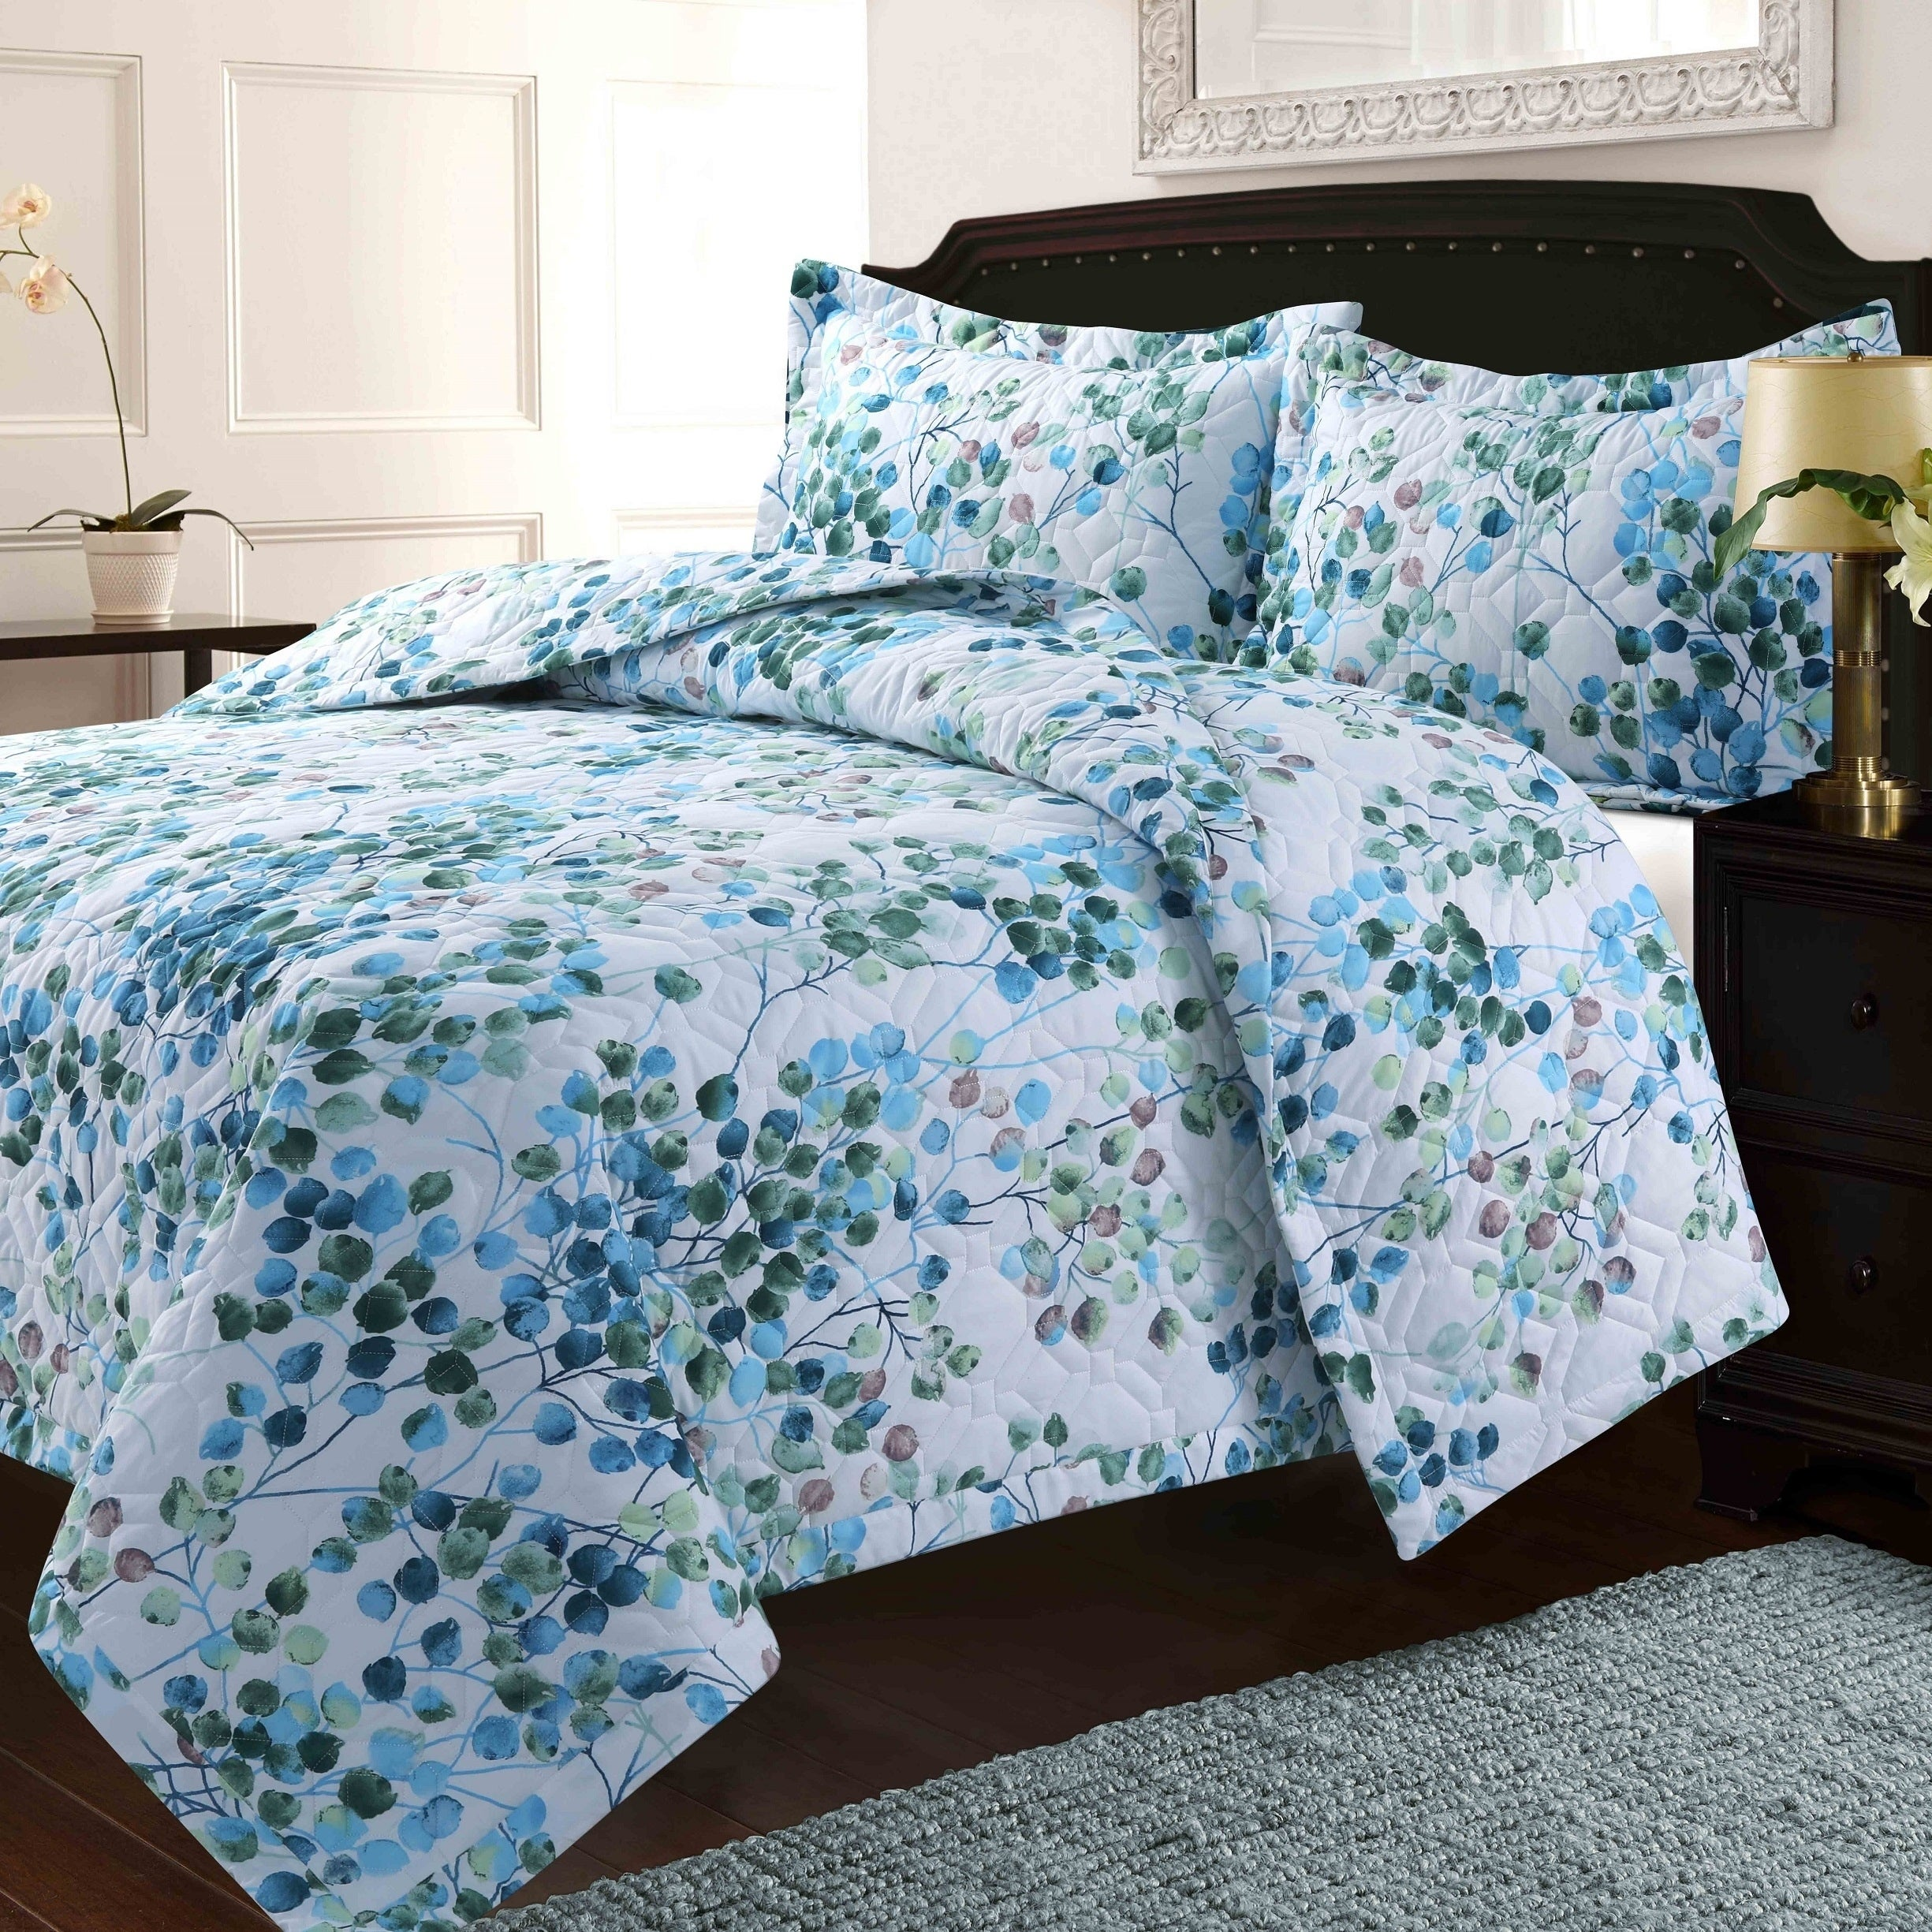 soulful portia for twin quilts bedspread bedding arresting green pearl oversized colormate of bag designs quilt a daybed bedspreads mainstays class touch e